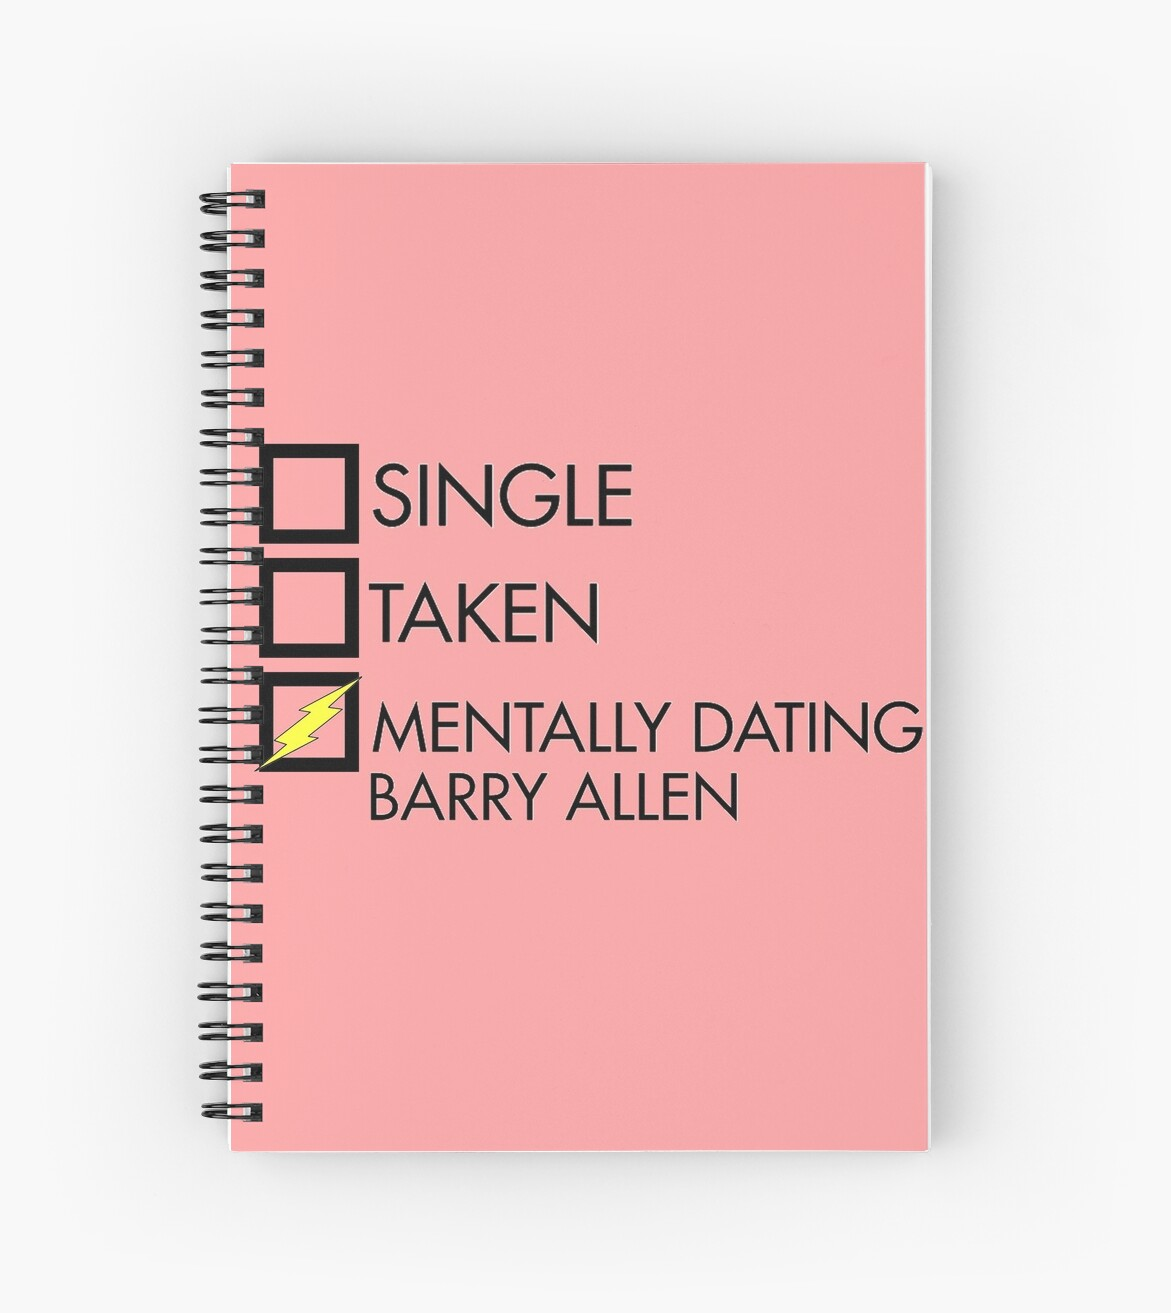 dating barry allen would include